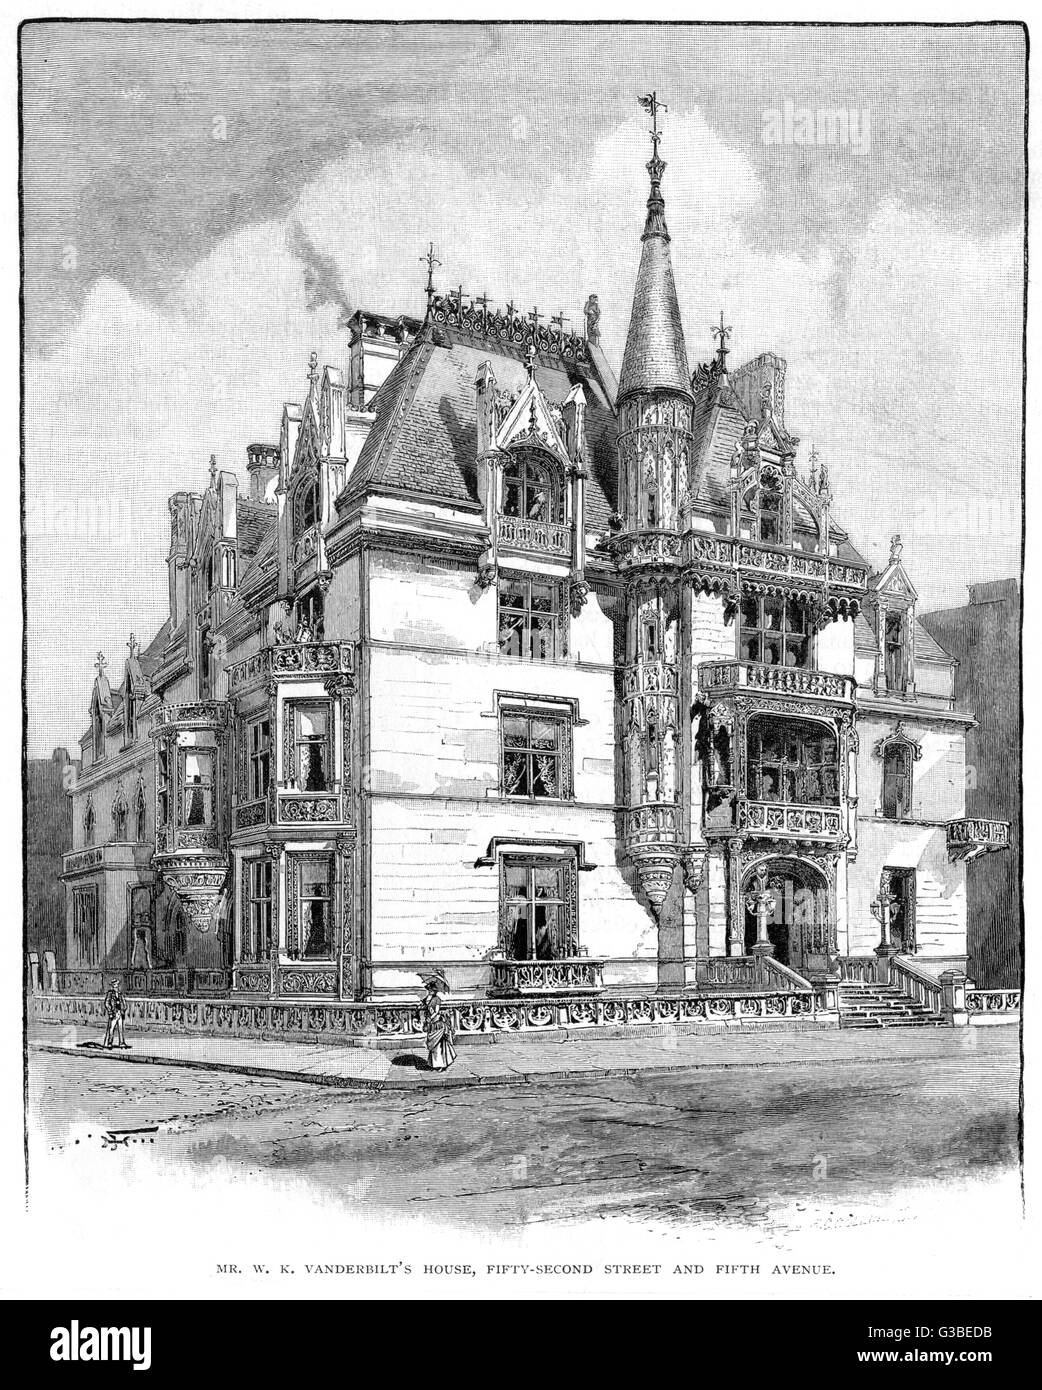 The luxurious house of W K  Vanderbilt on 52nd Street and  Fifth Avenue in New York        Date: 1885 - Stock Image